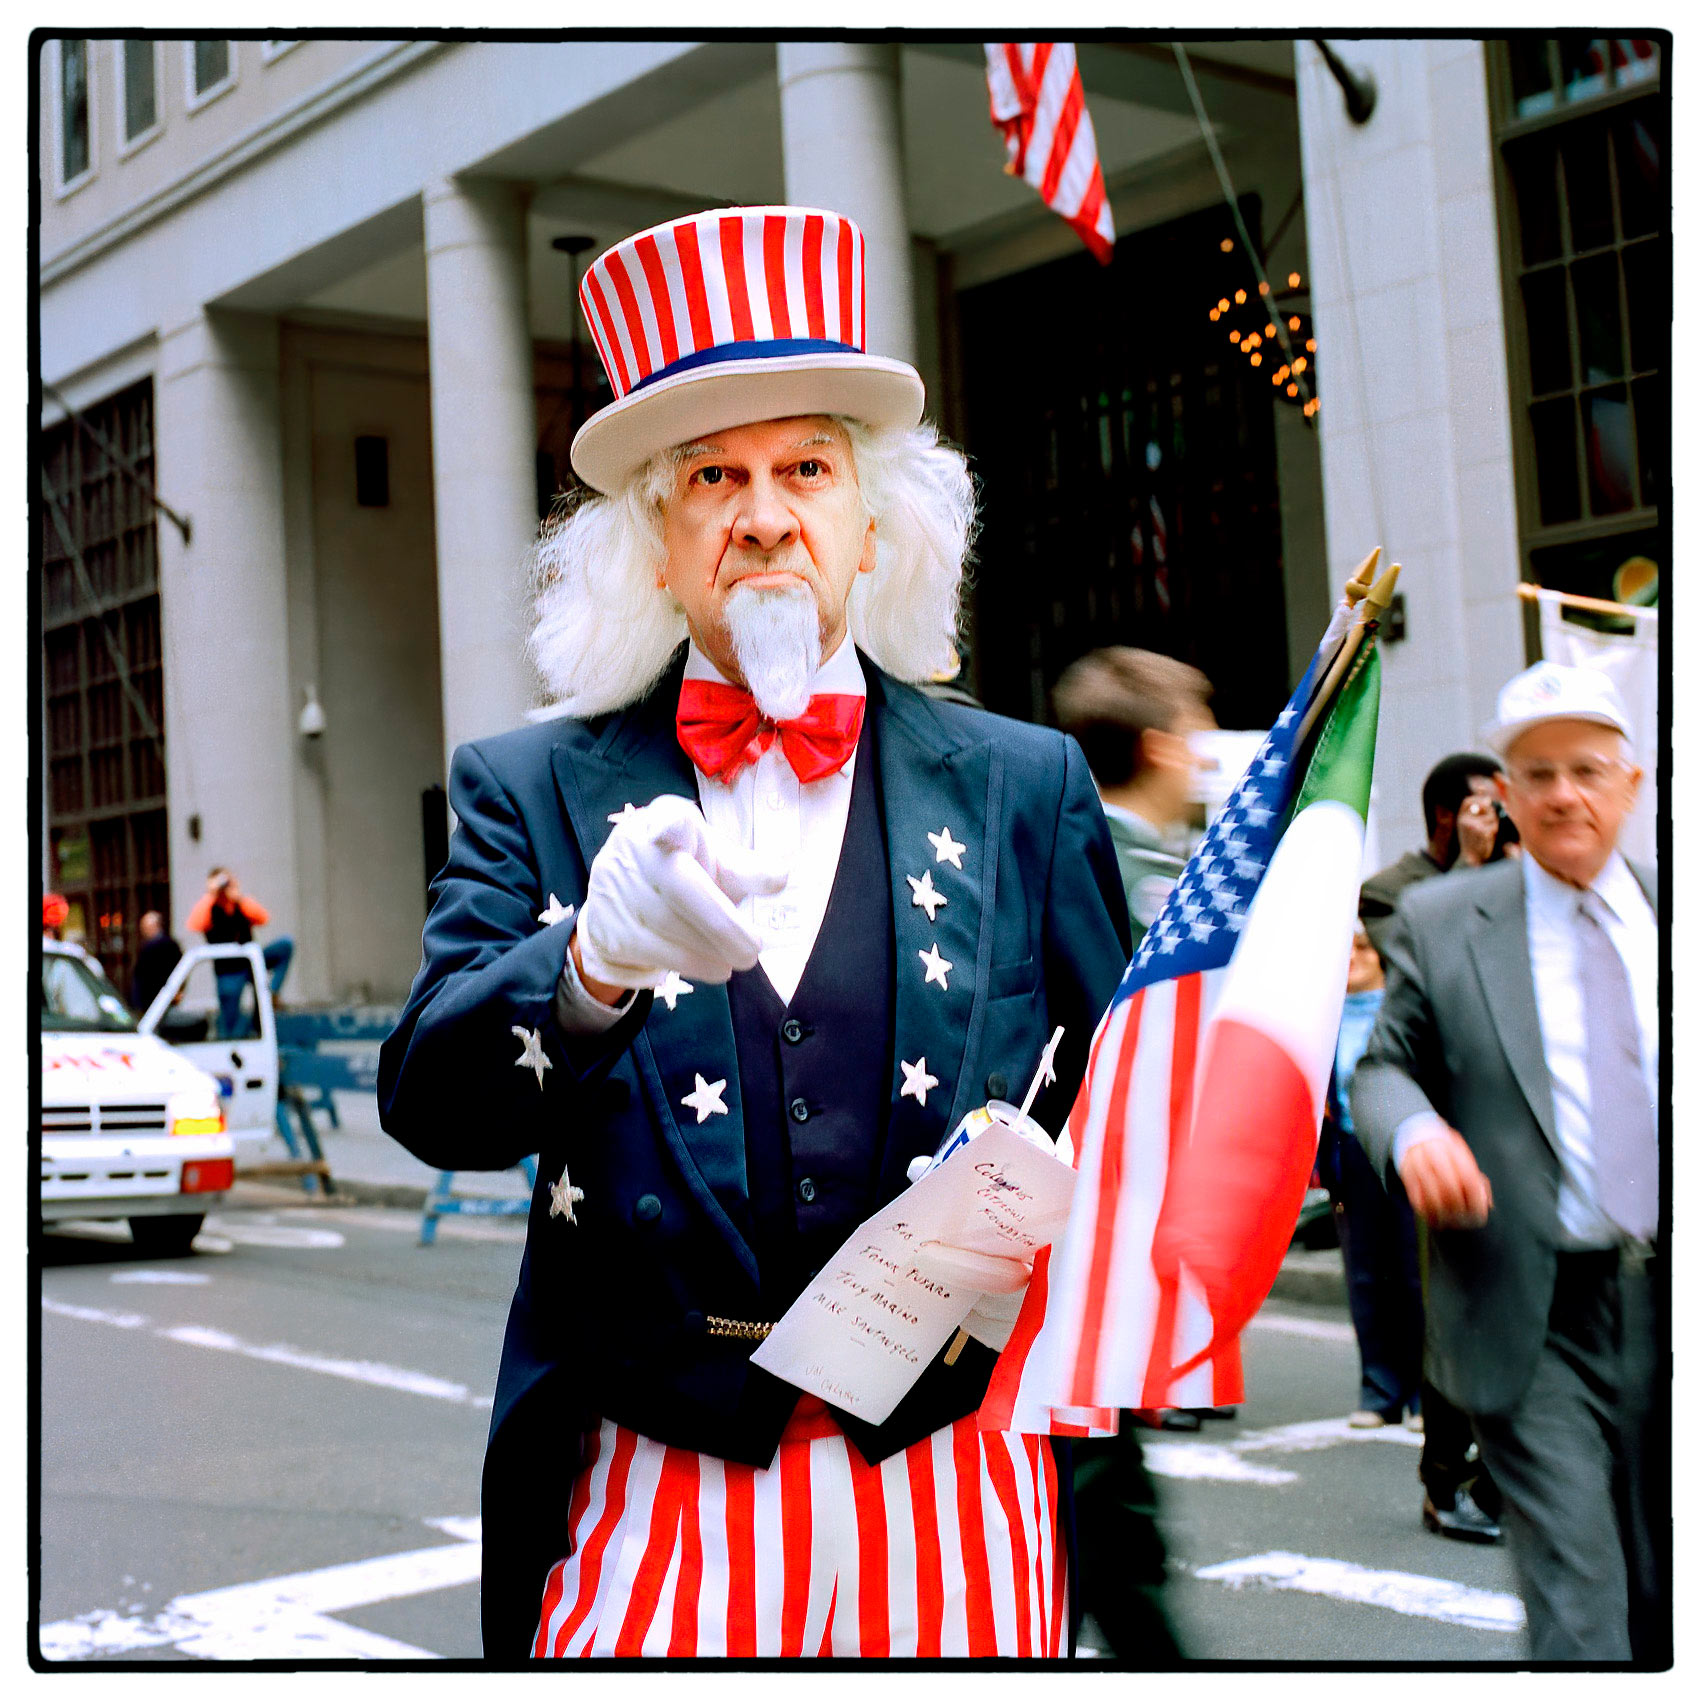 a-man-dressed-as-uncle-sam-points-his-finger-while-having-his-photo-taken-at-thanks-giving-parade-in-new-york-city